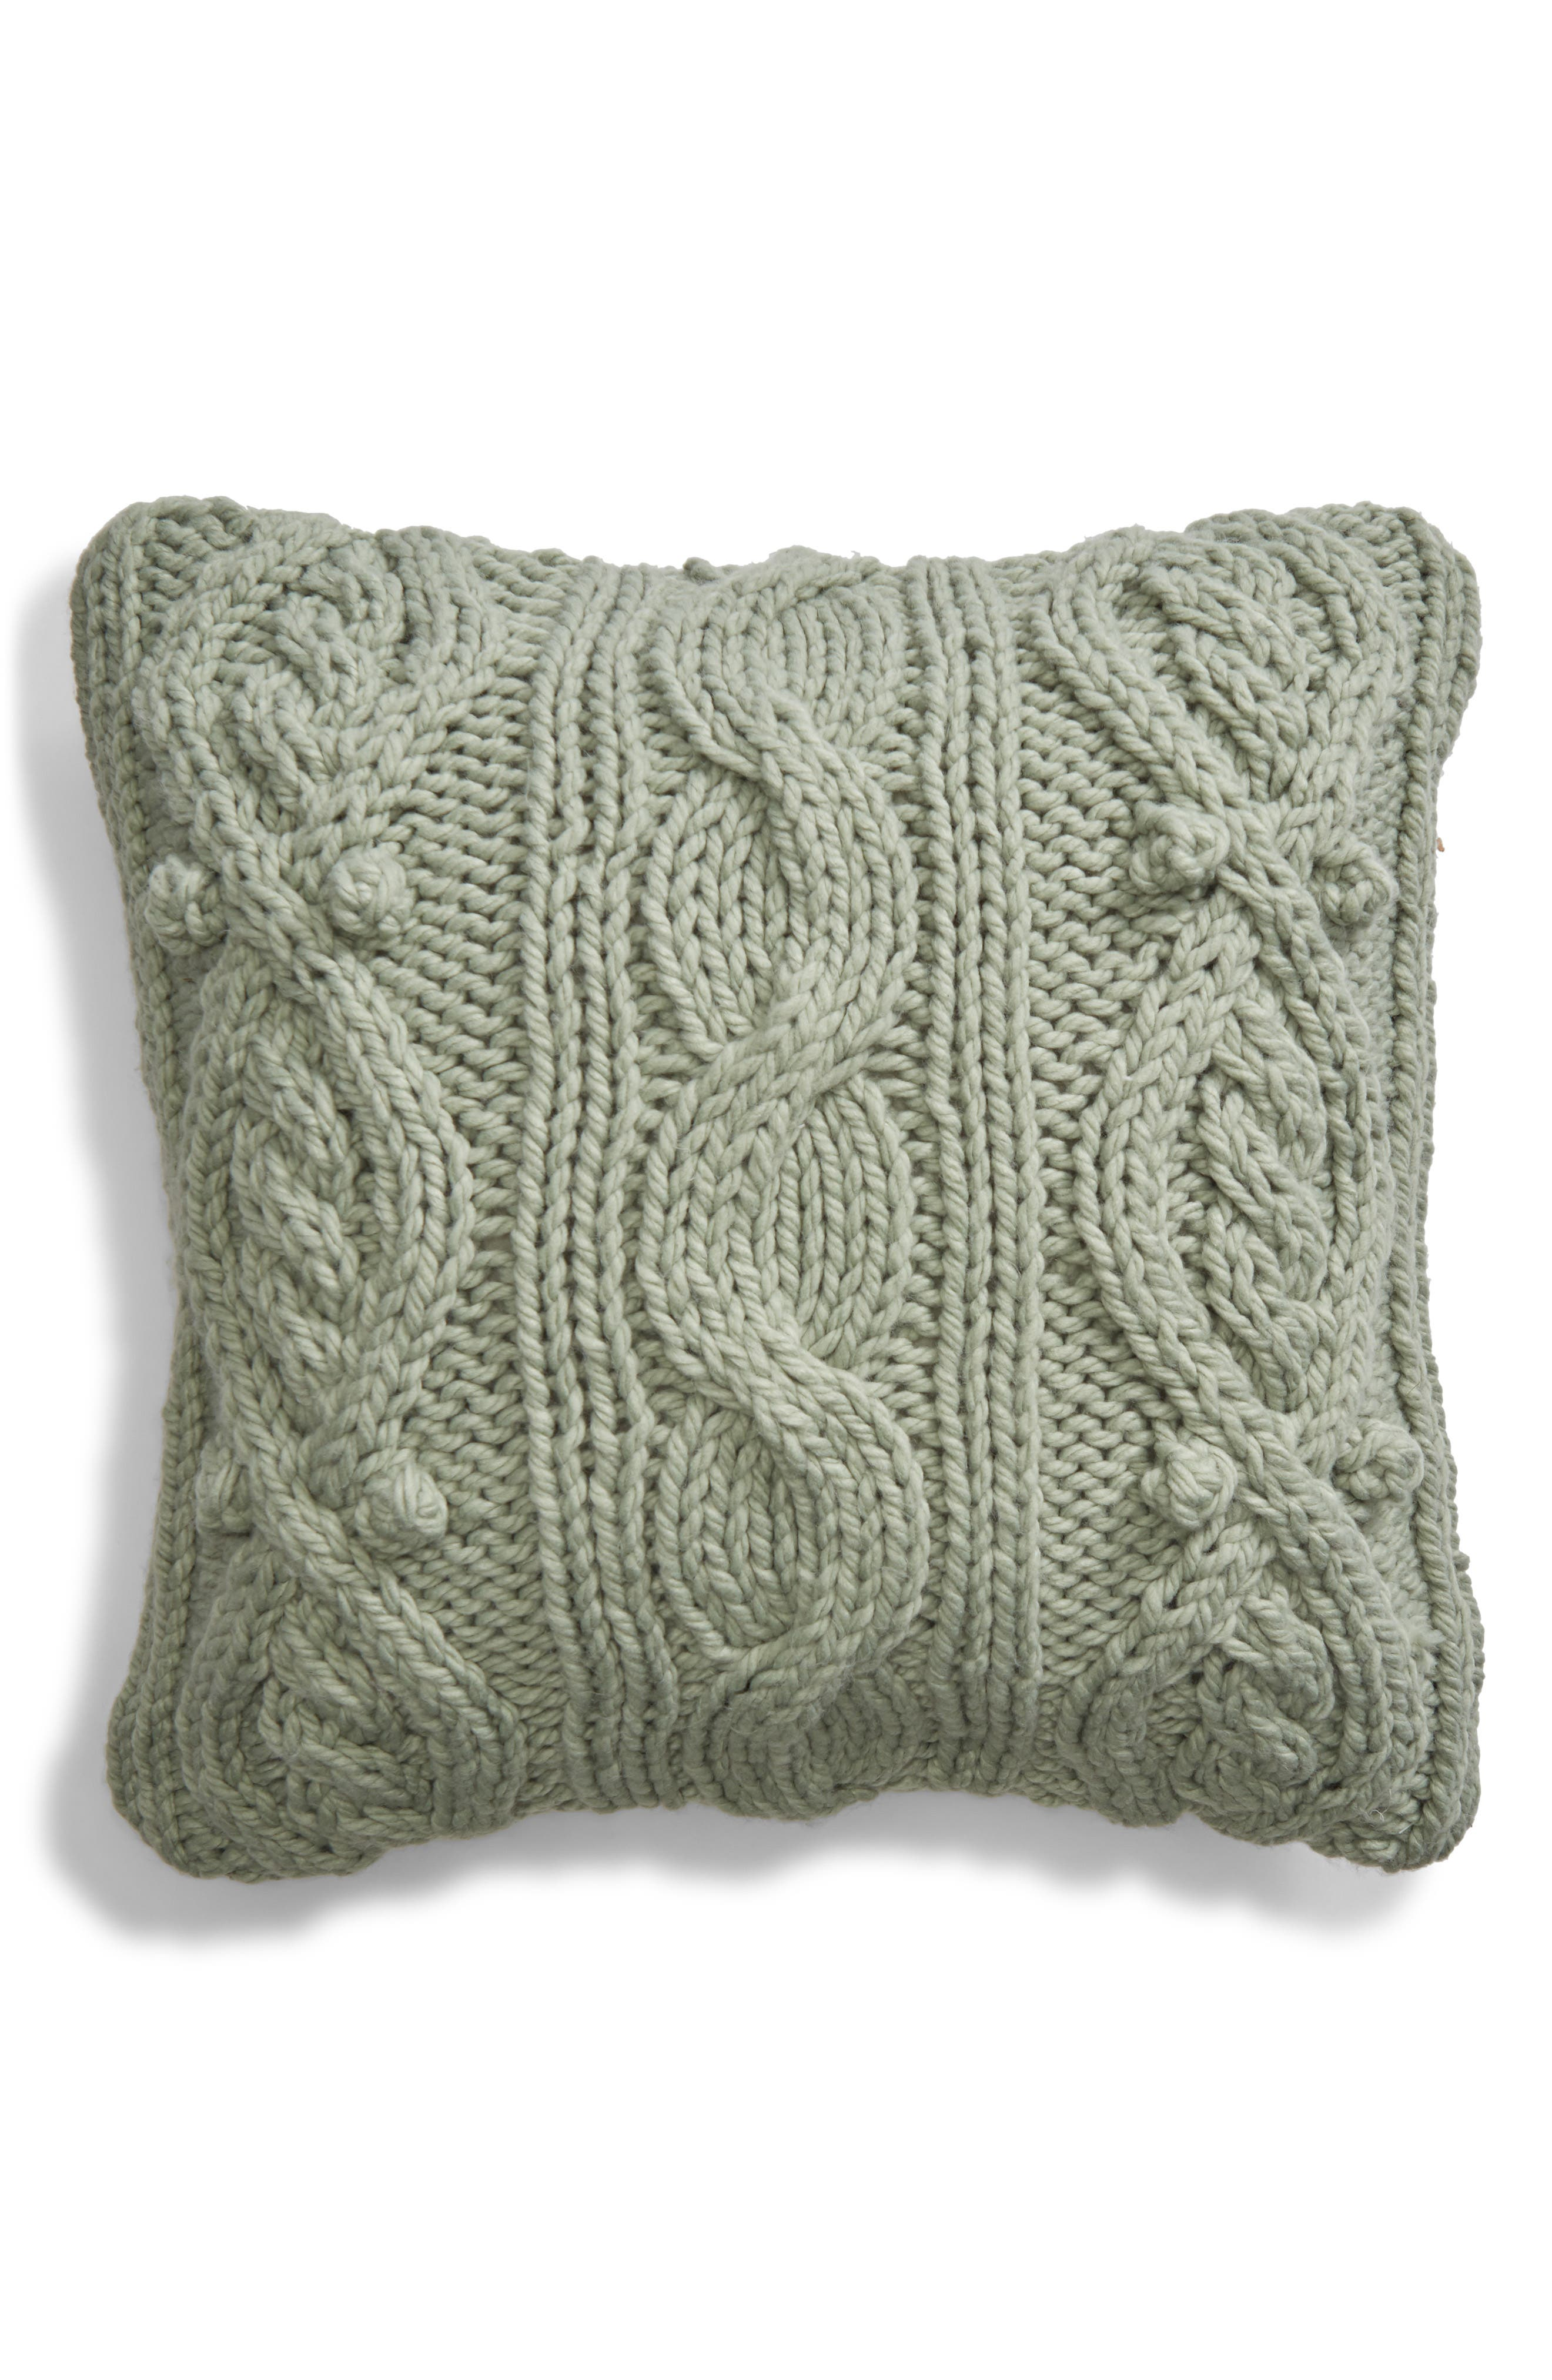 Chunky Cable Knit Accent Pillow,                         Main,                         color, GREEN ICEBERG